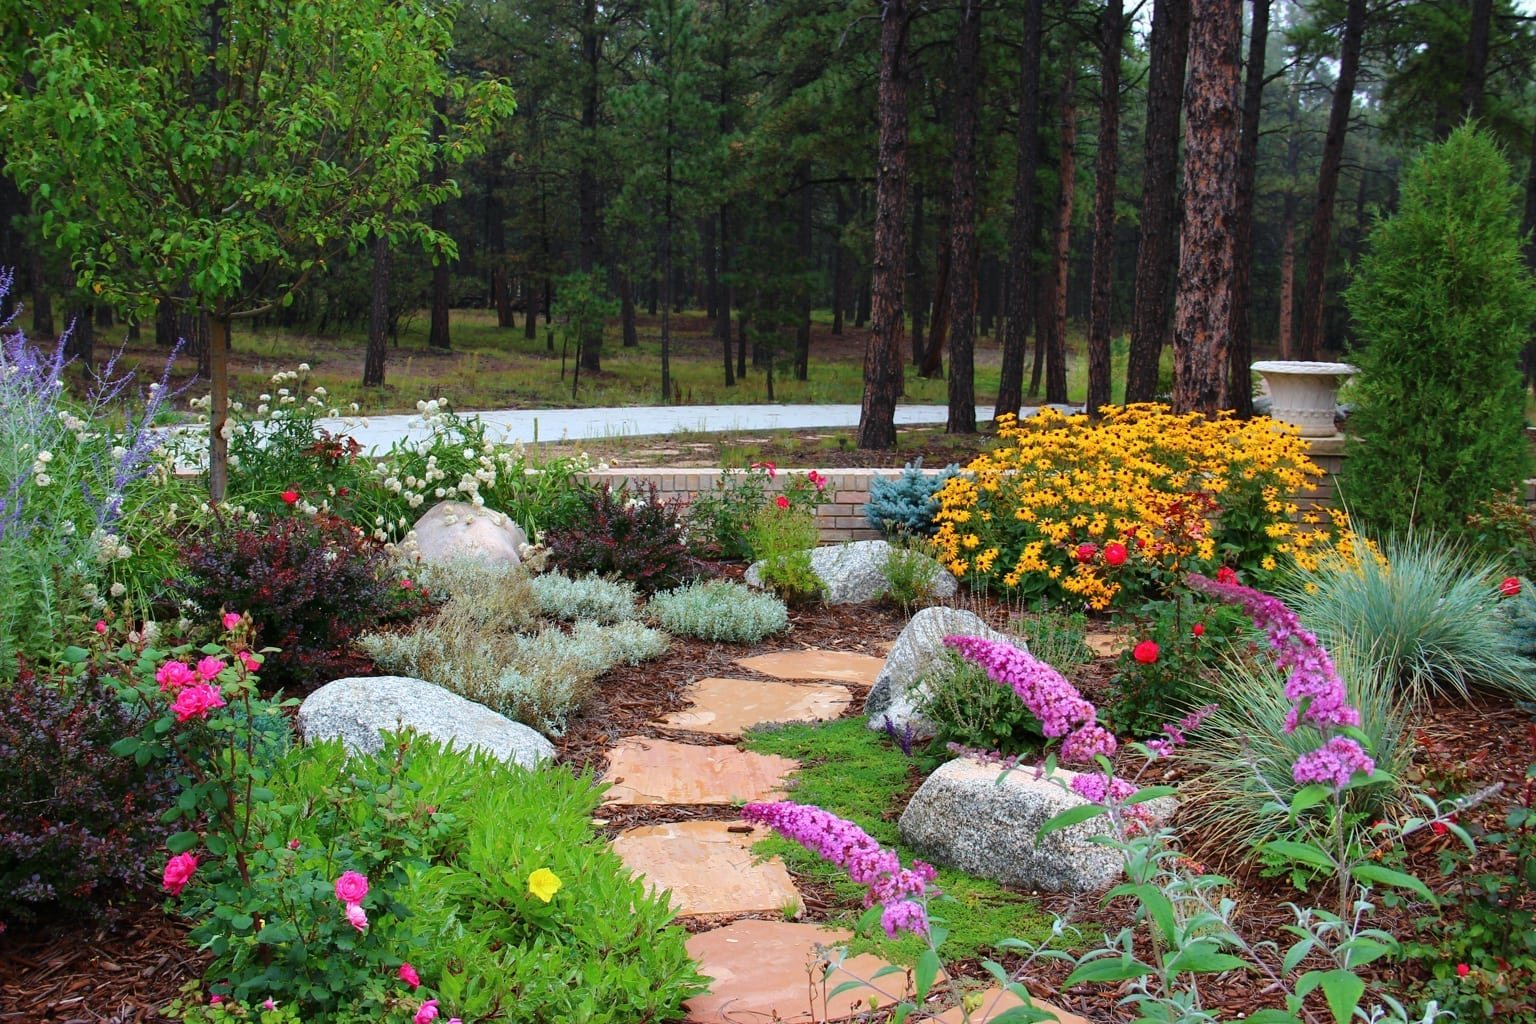 Xeriscape Colorado Springs | Colorado Xeriscaping - JakesDesigns on for front yard rock landscaping ideas, japanese back yard landscaping ideas, small backyard landscape ideas, inexpensive landscaping ideas, modern back yard landscaping ideas,